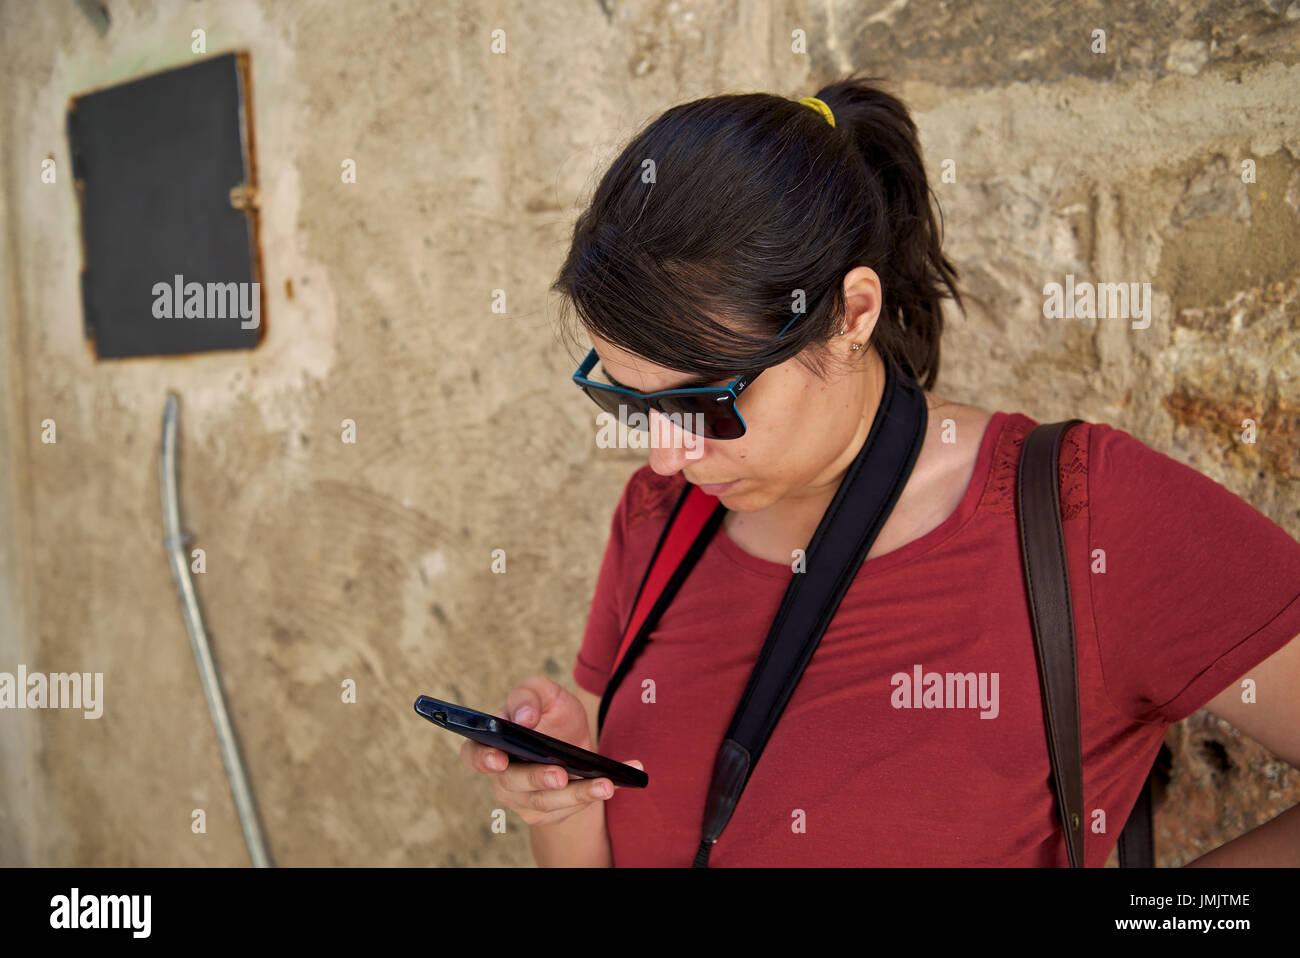 Woman with sunglasses and pigtail dressed on a red T-Shirt with a camera strap on her neck checks her smartphone on a centric street of Cuenca, Spain. - Stock Image